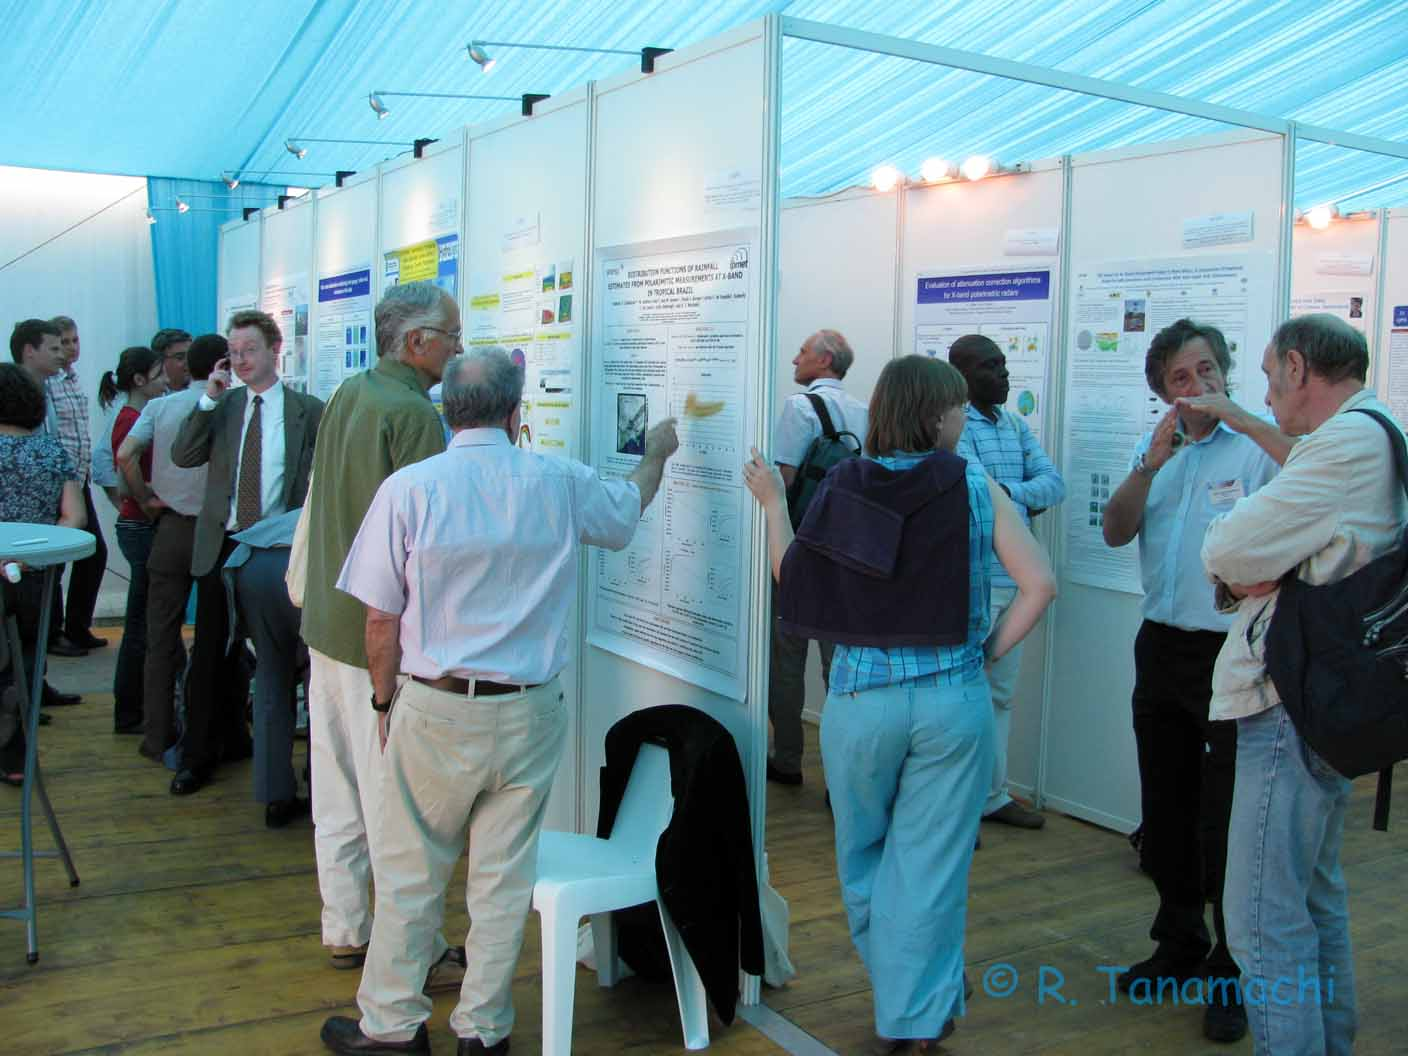 Poster session at ERAD 2012